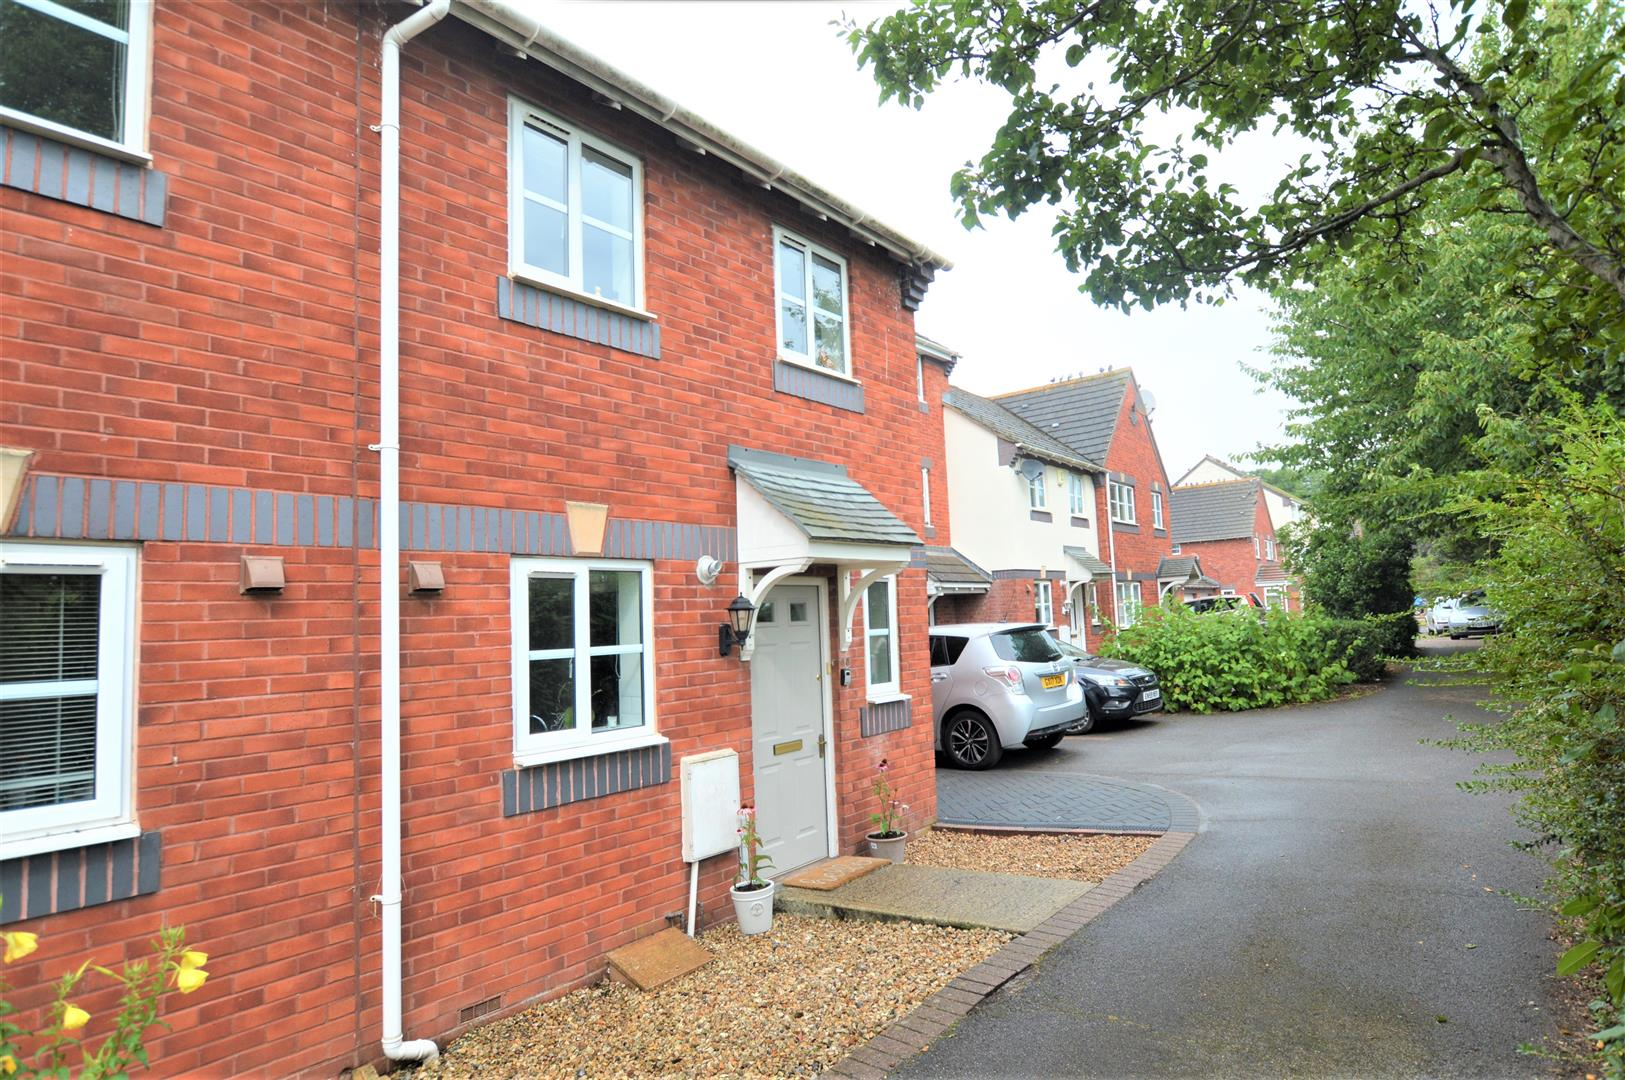 40 Old Bakery Close, Exwick, EXETER